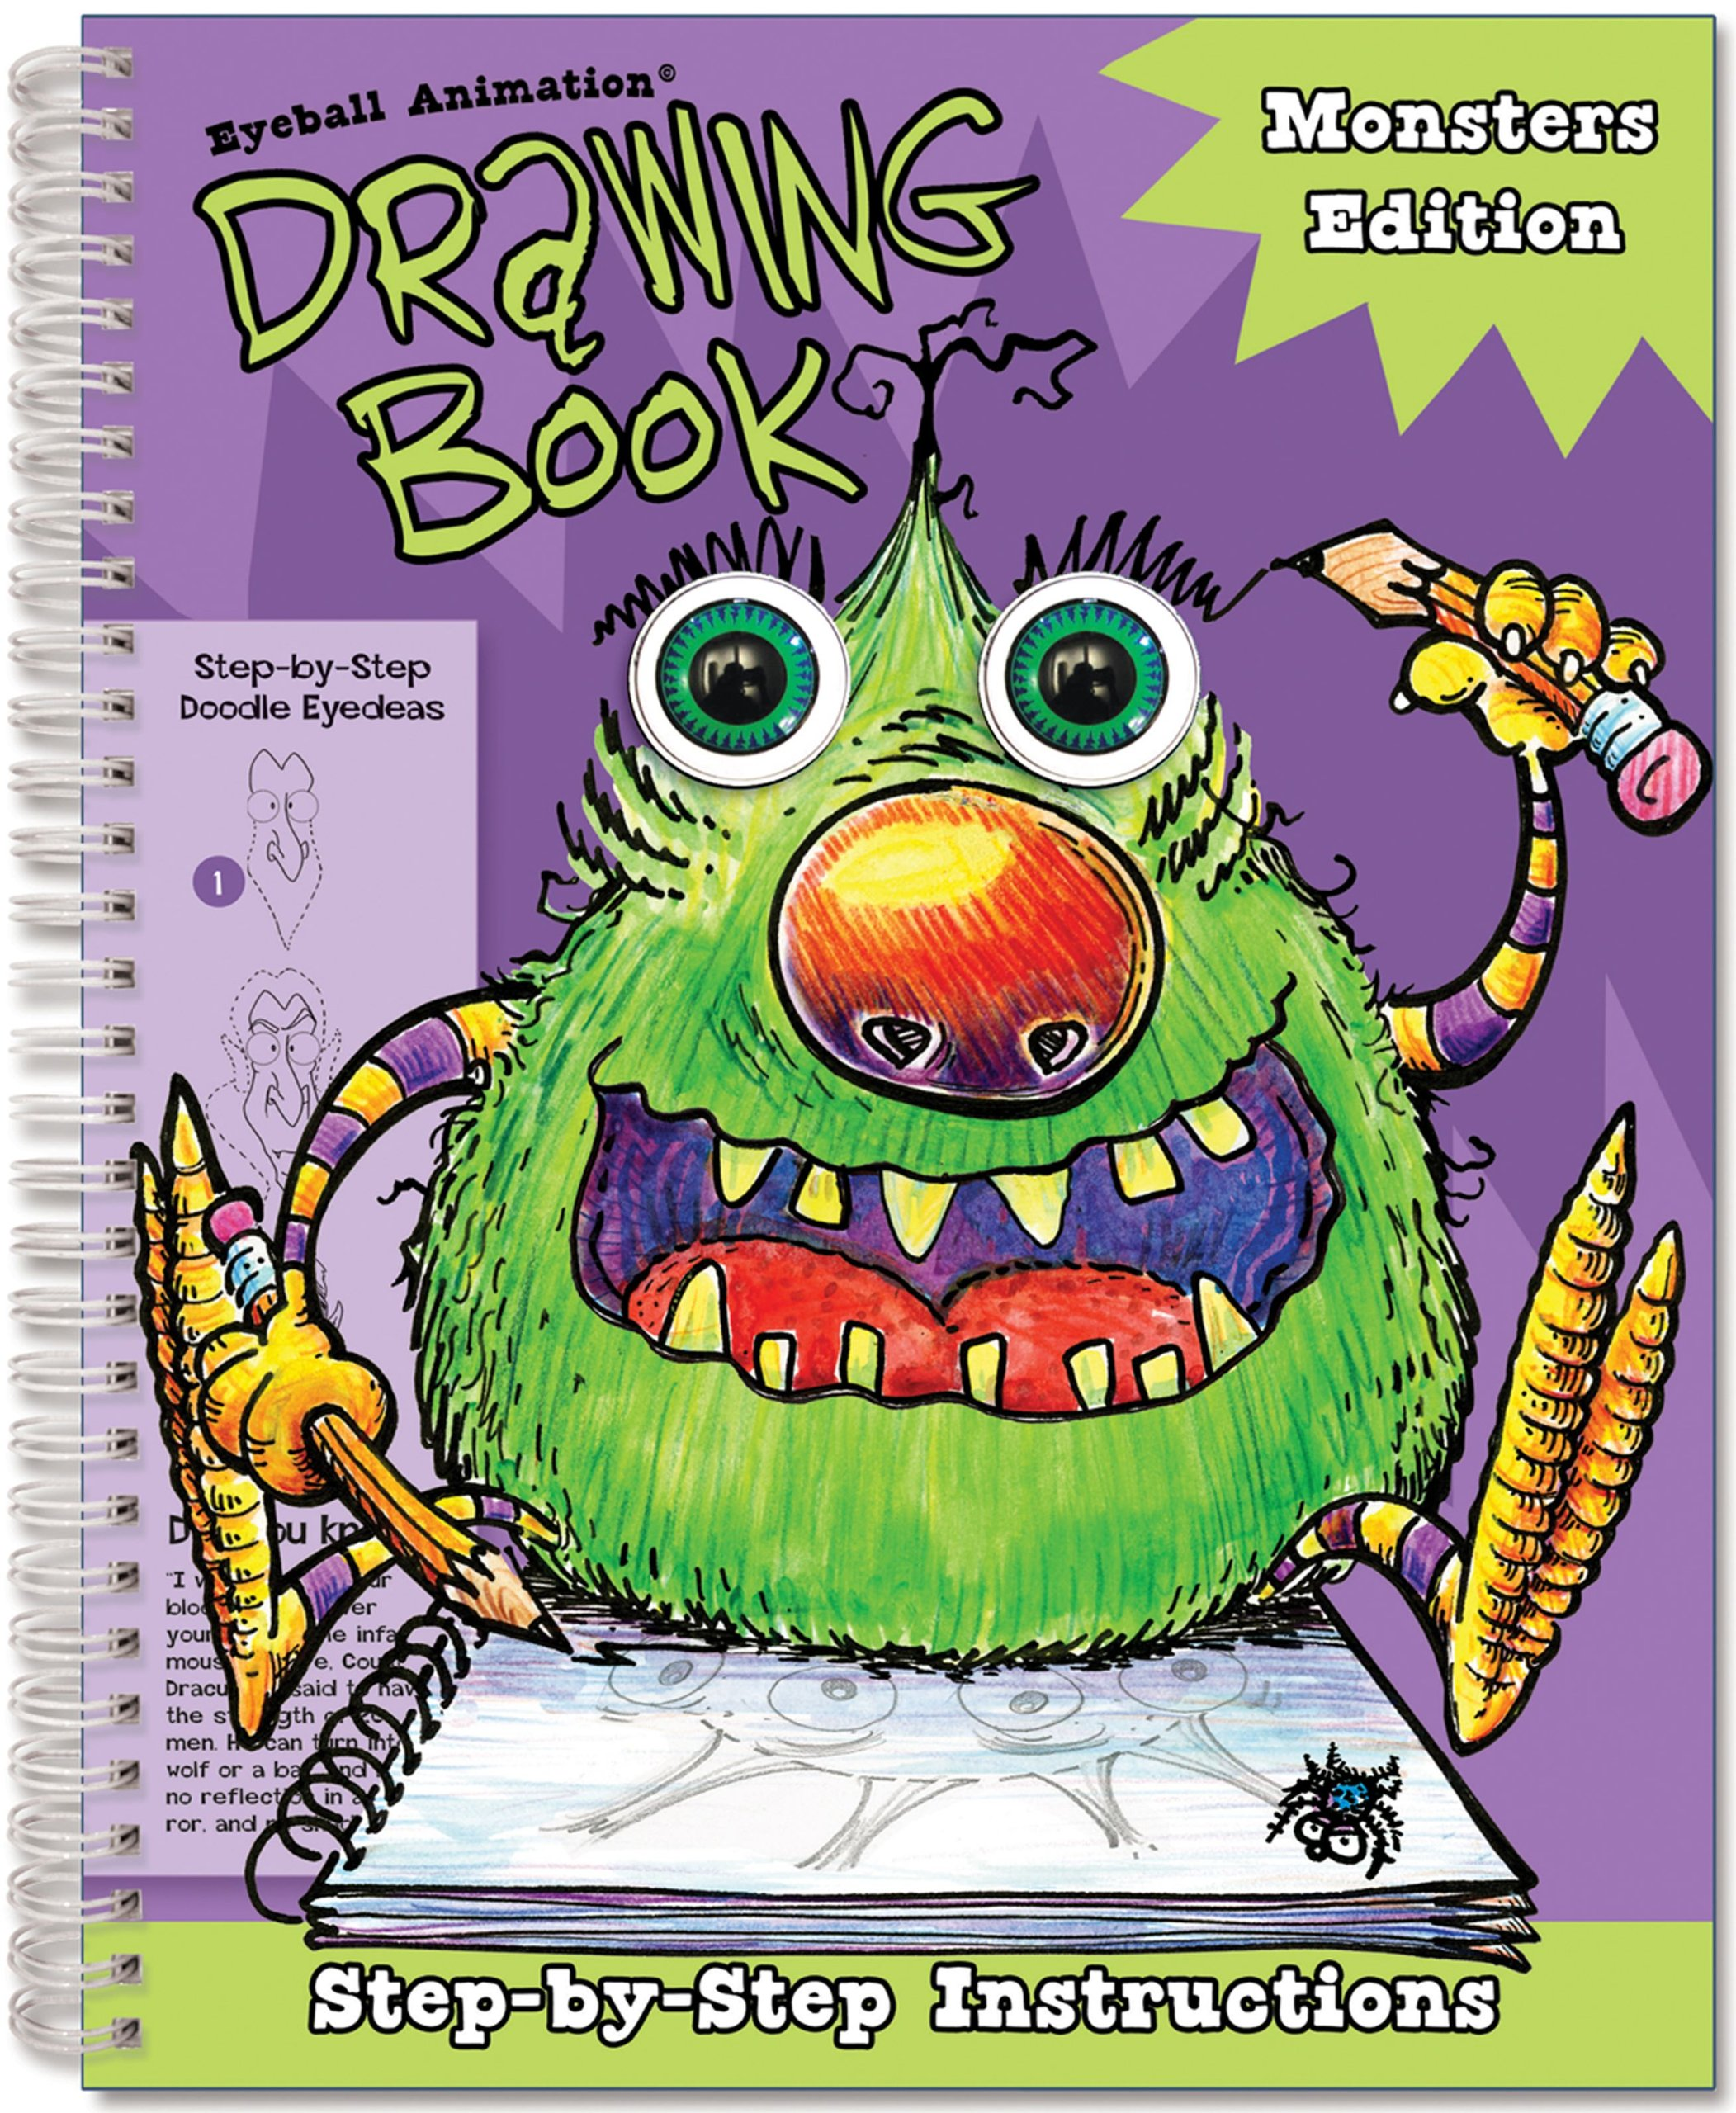 Eyeball Animation Drawing Book: Monsters Edition (Eyeball Animation Drawing Books) PDF